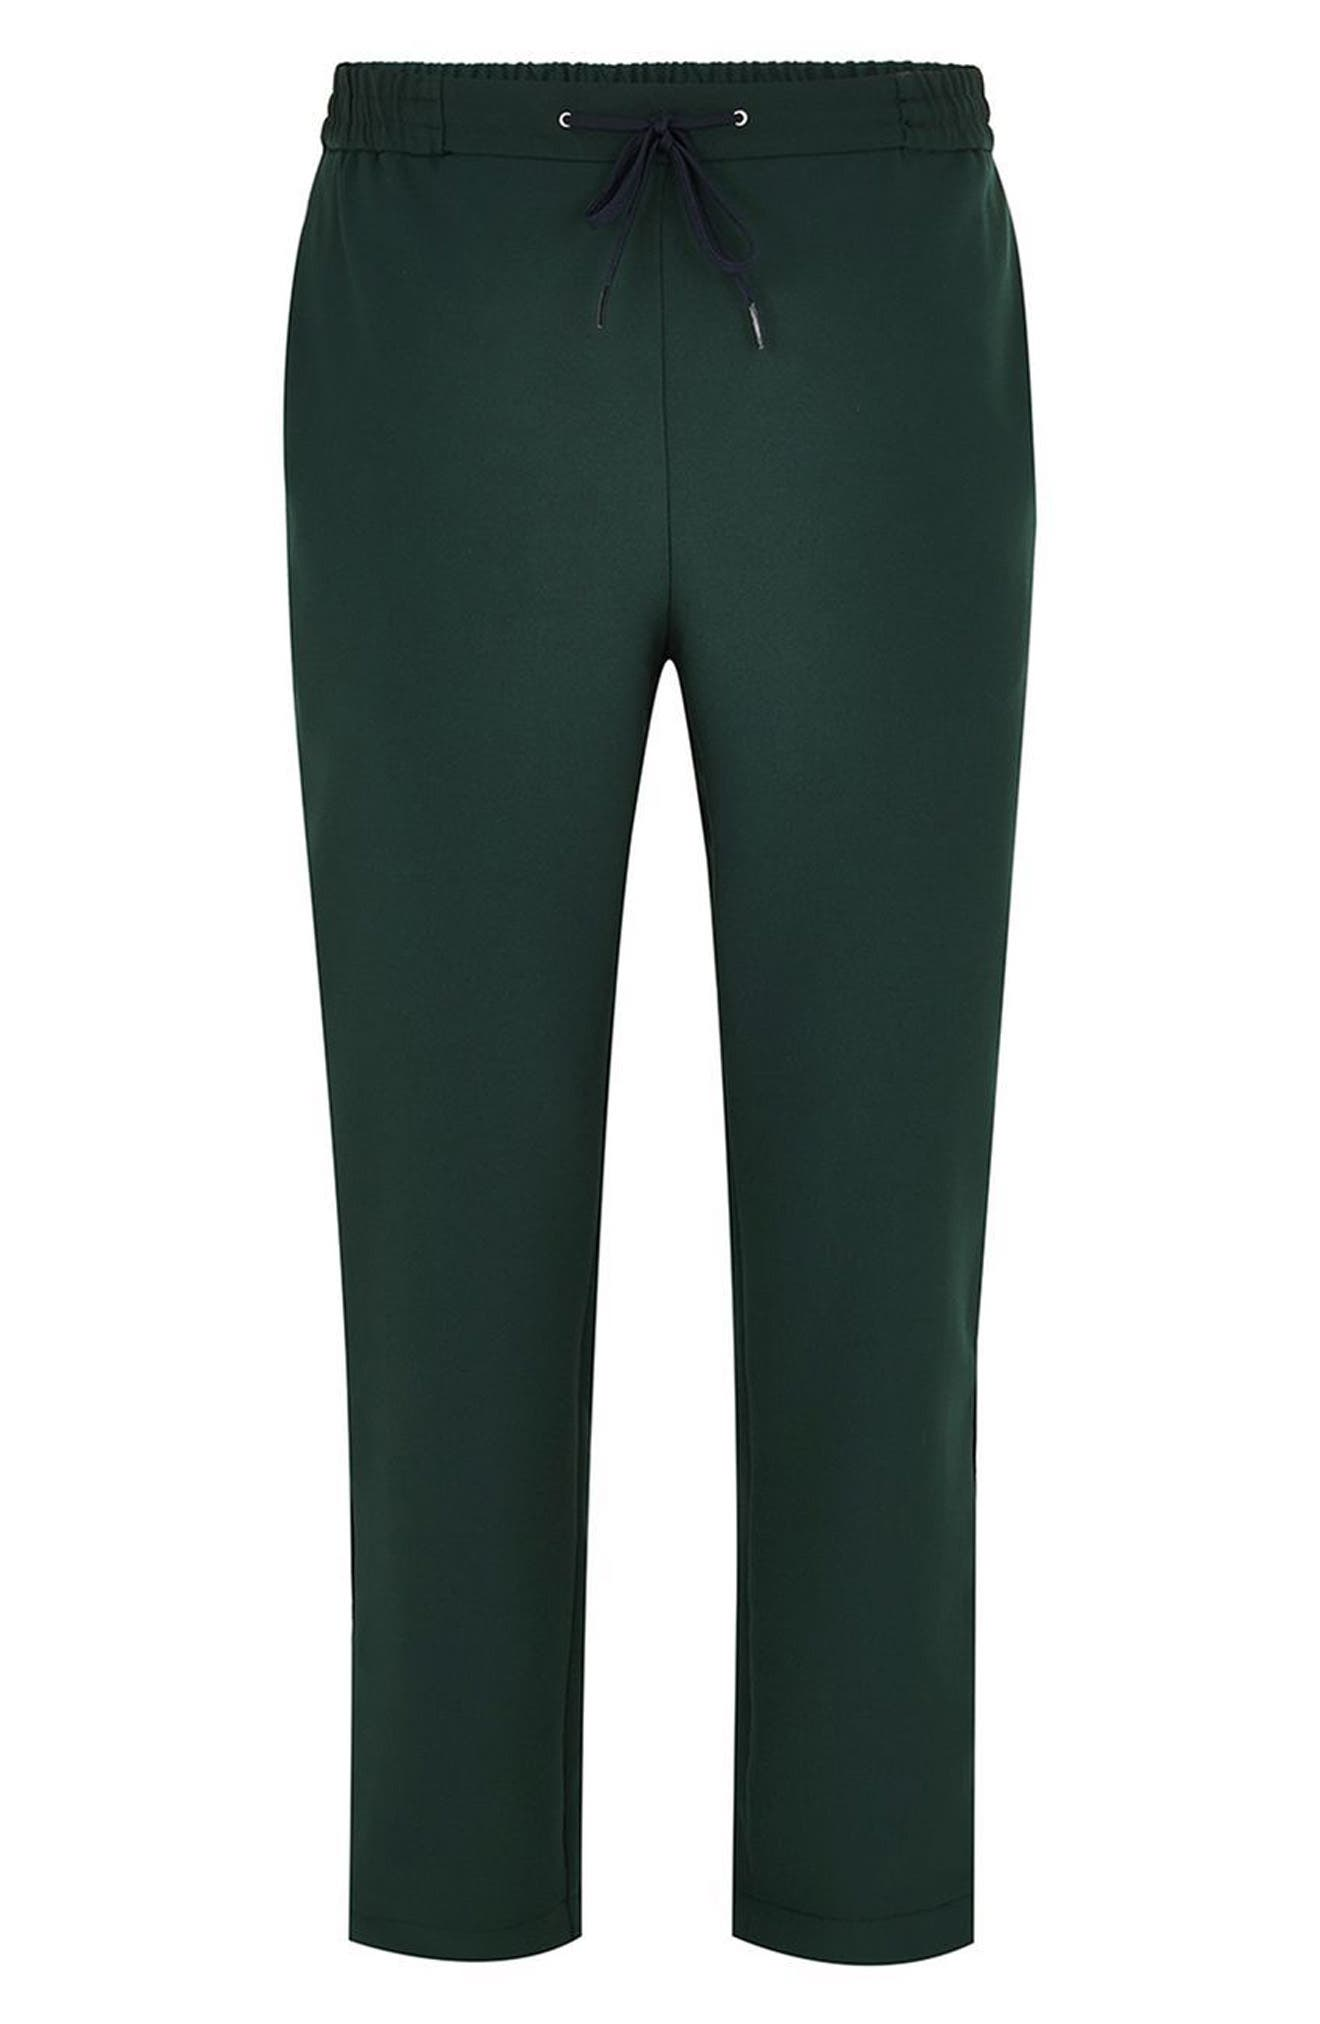 Slim Cropped Track Pants,                             Alternate thumbnail 4, color,                             300